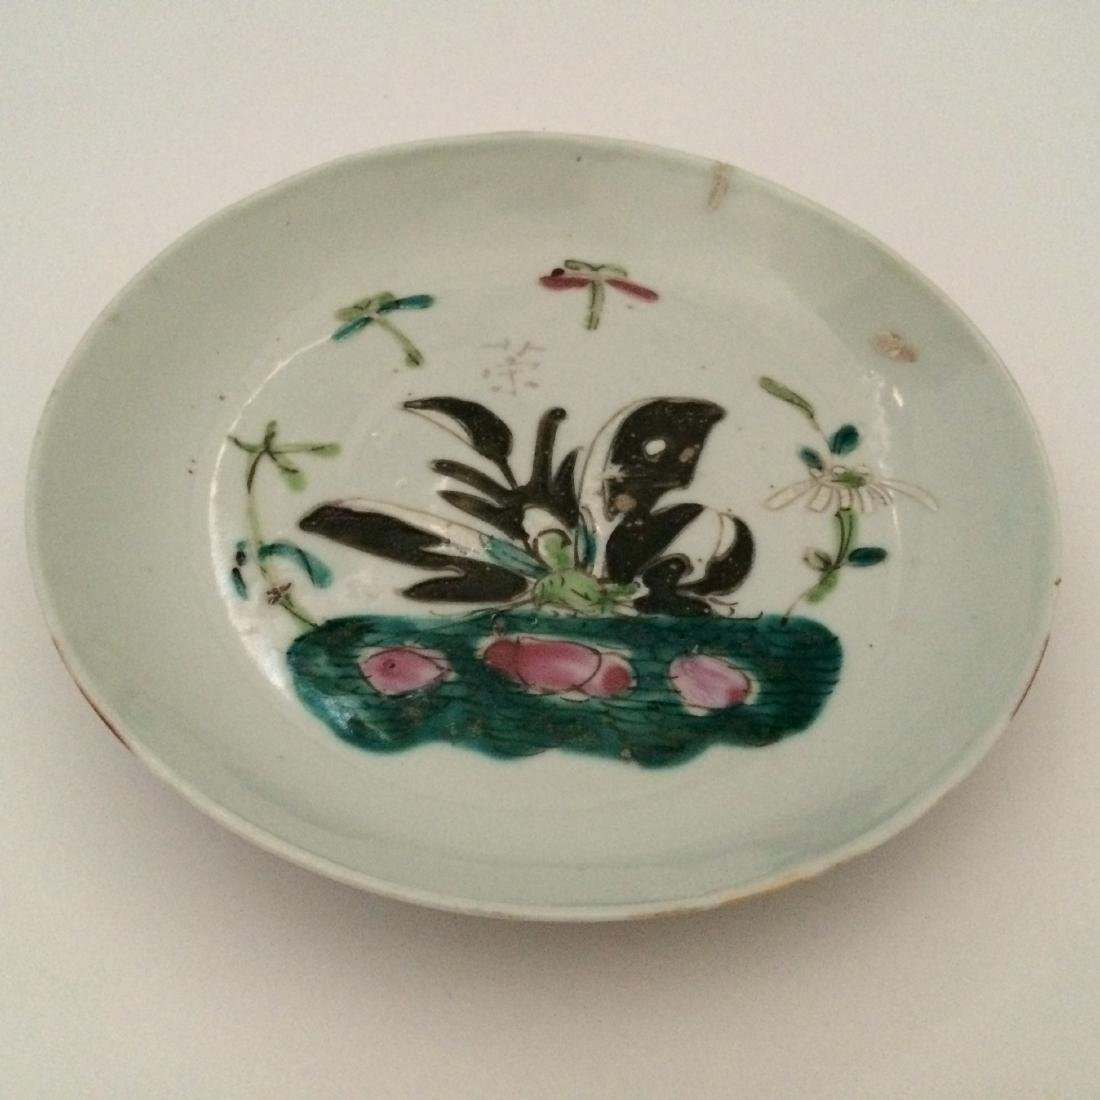 Chinese Chin Dynasty Porcelain Plates Butterfly Design - 2